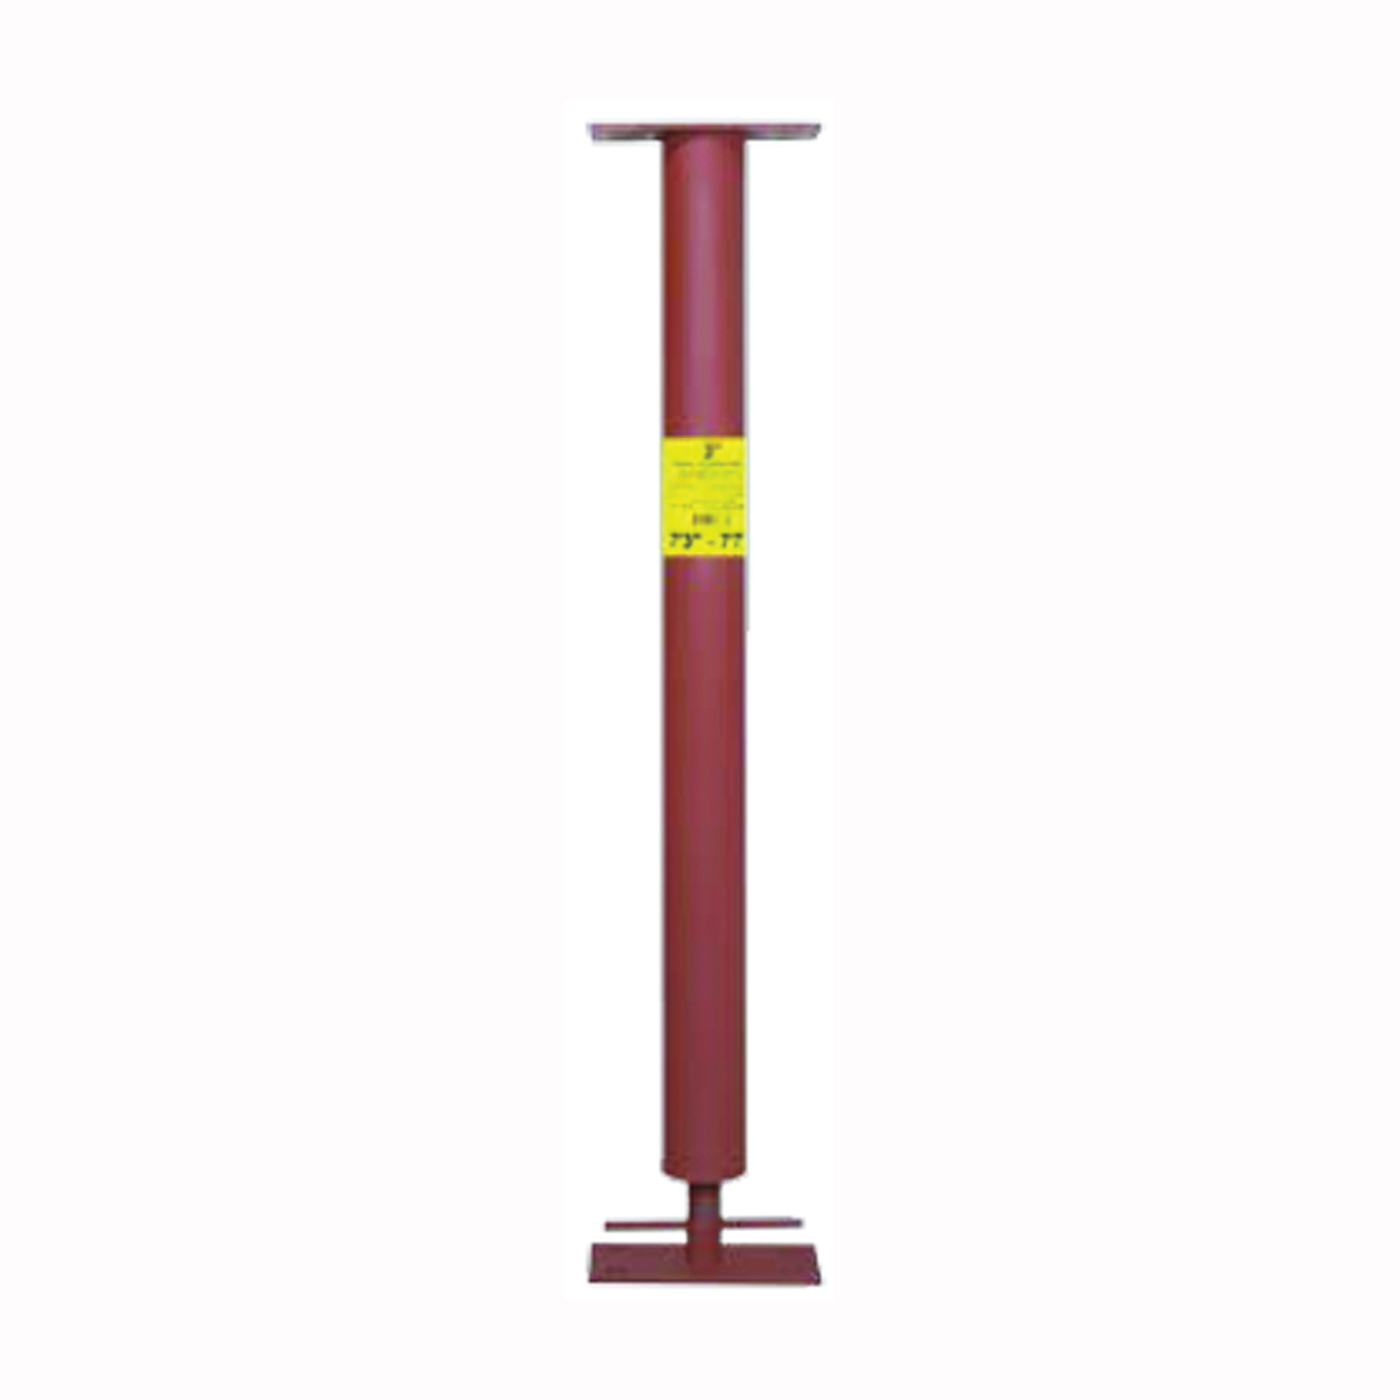 Picture of MARSHALL STAMPING Extend-O-Column AC369/3691 Round Column, 6 ft 9 in to 7 ft 1 in